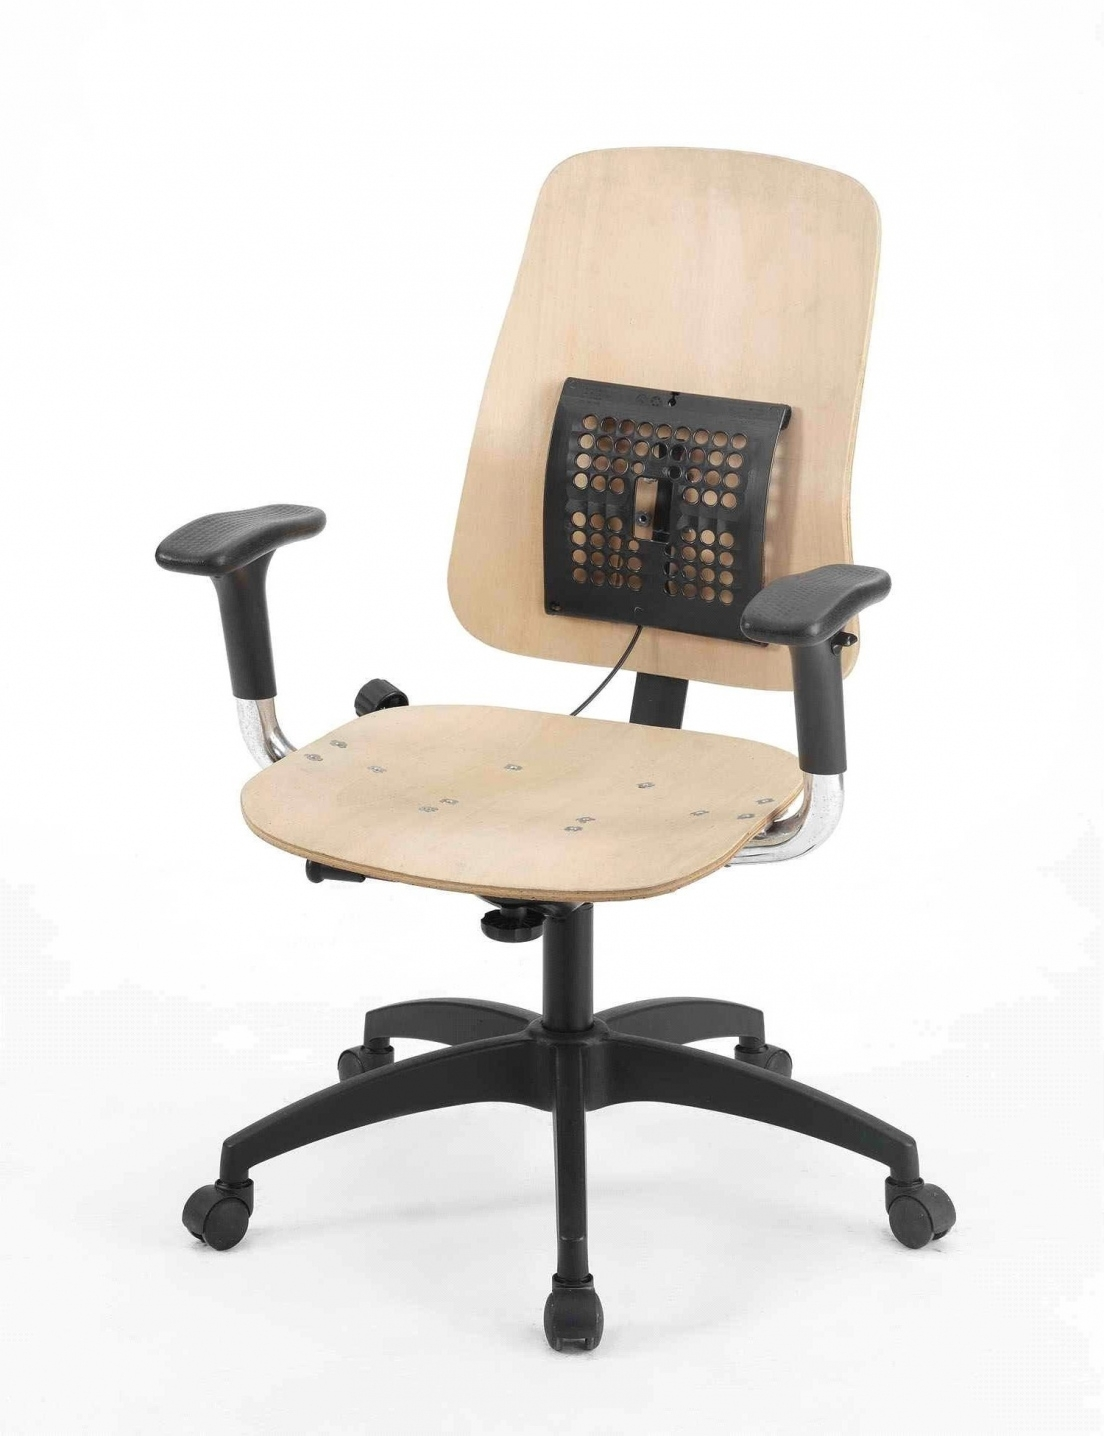 Executive Office Chairs With Adjustable Lumbar Support Within Current Office Chair With Adjustable Lumbar Support – Desk Design Ideas (Gallery 13 of 20)